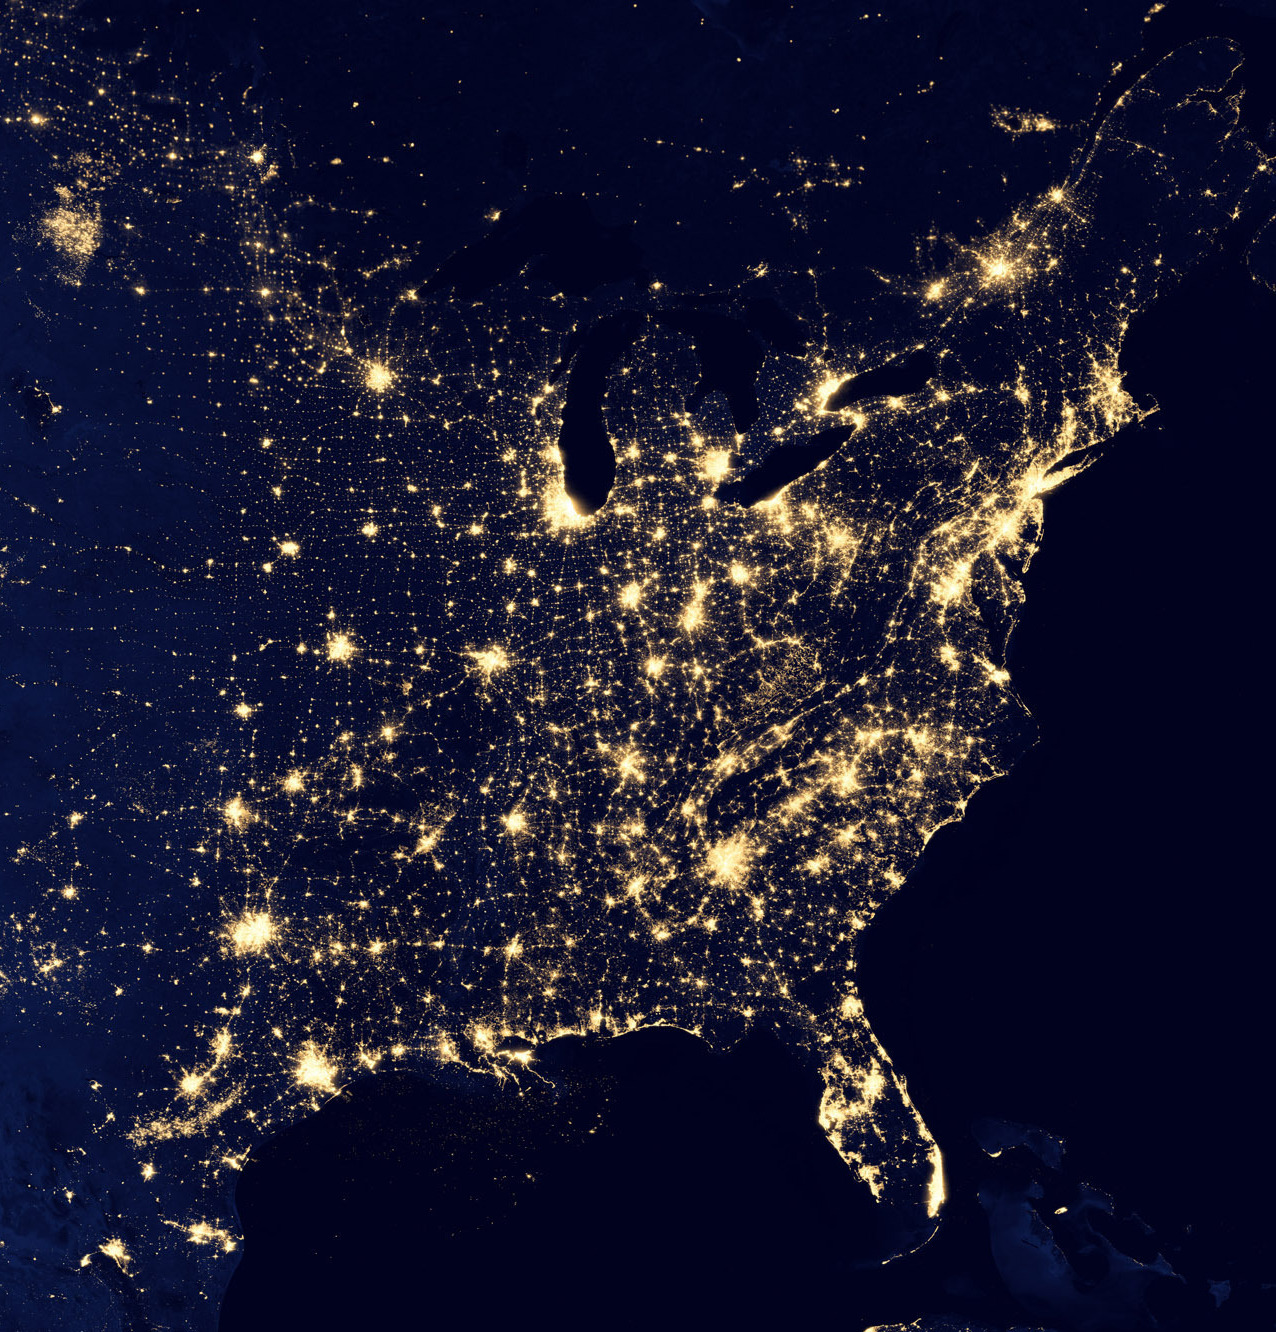 A stellite image of the eastern half of North America at night.